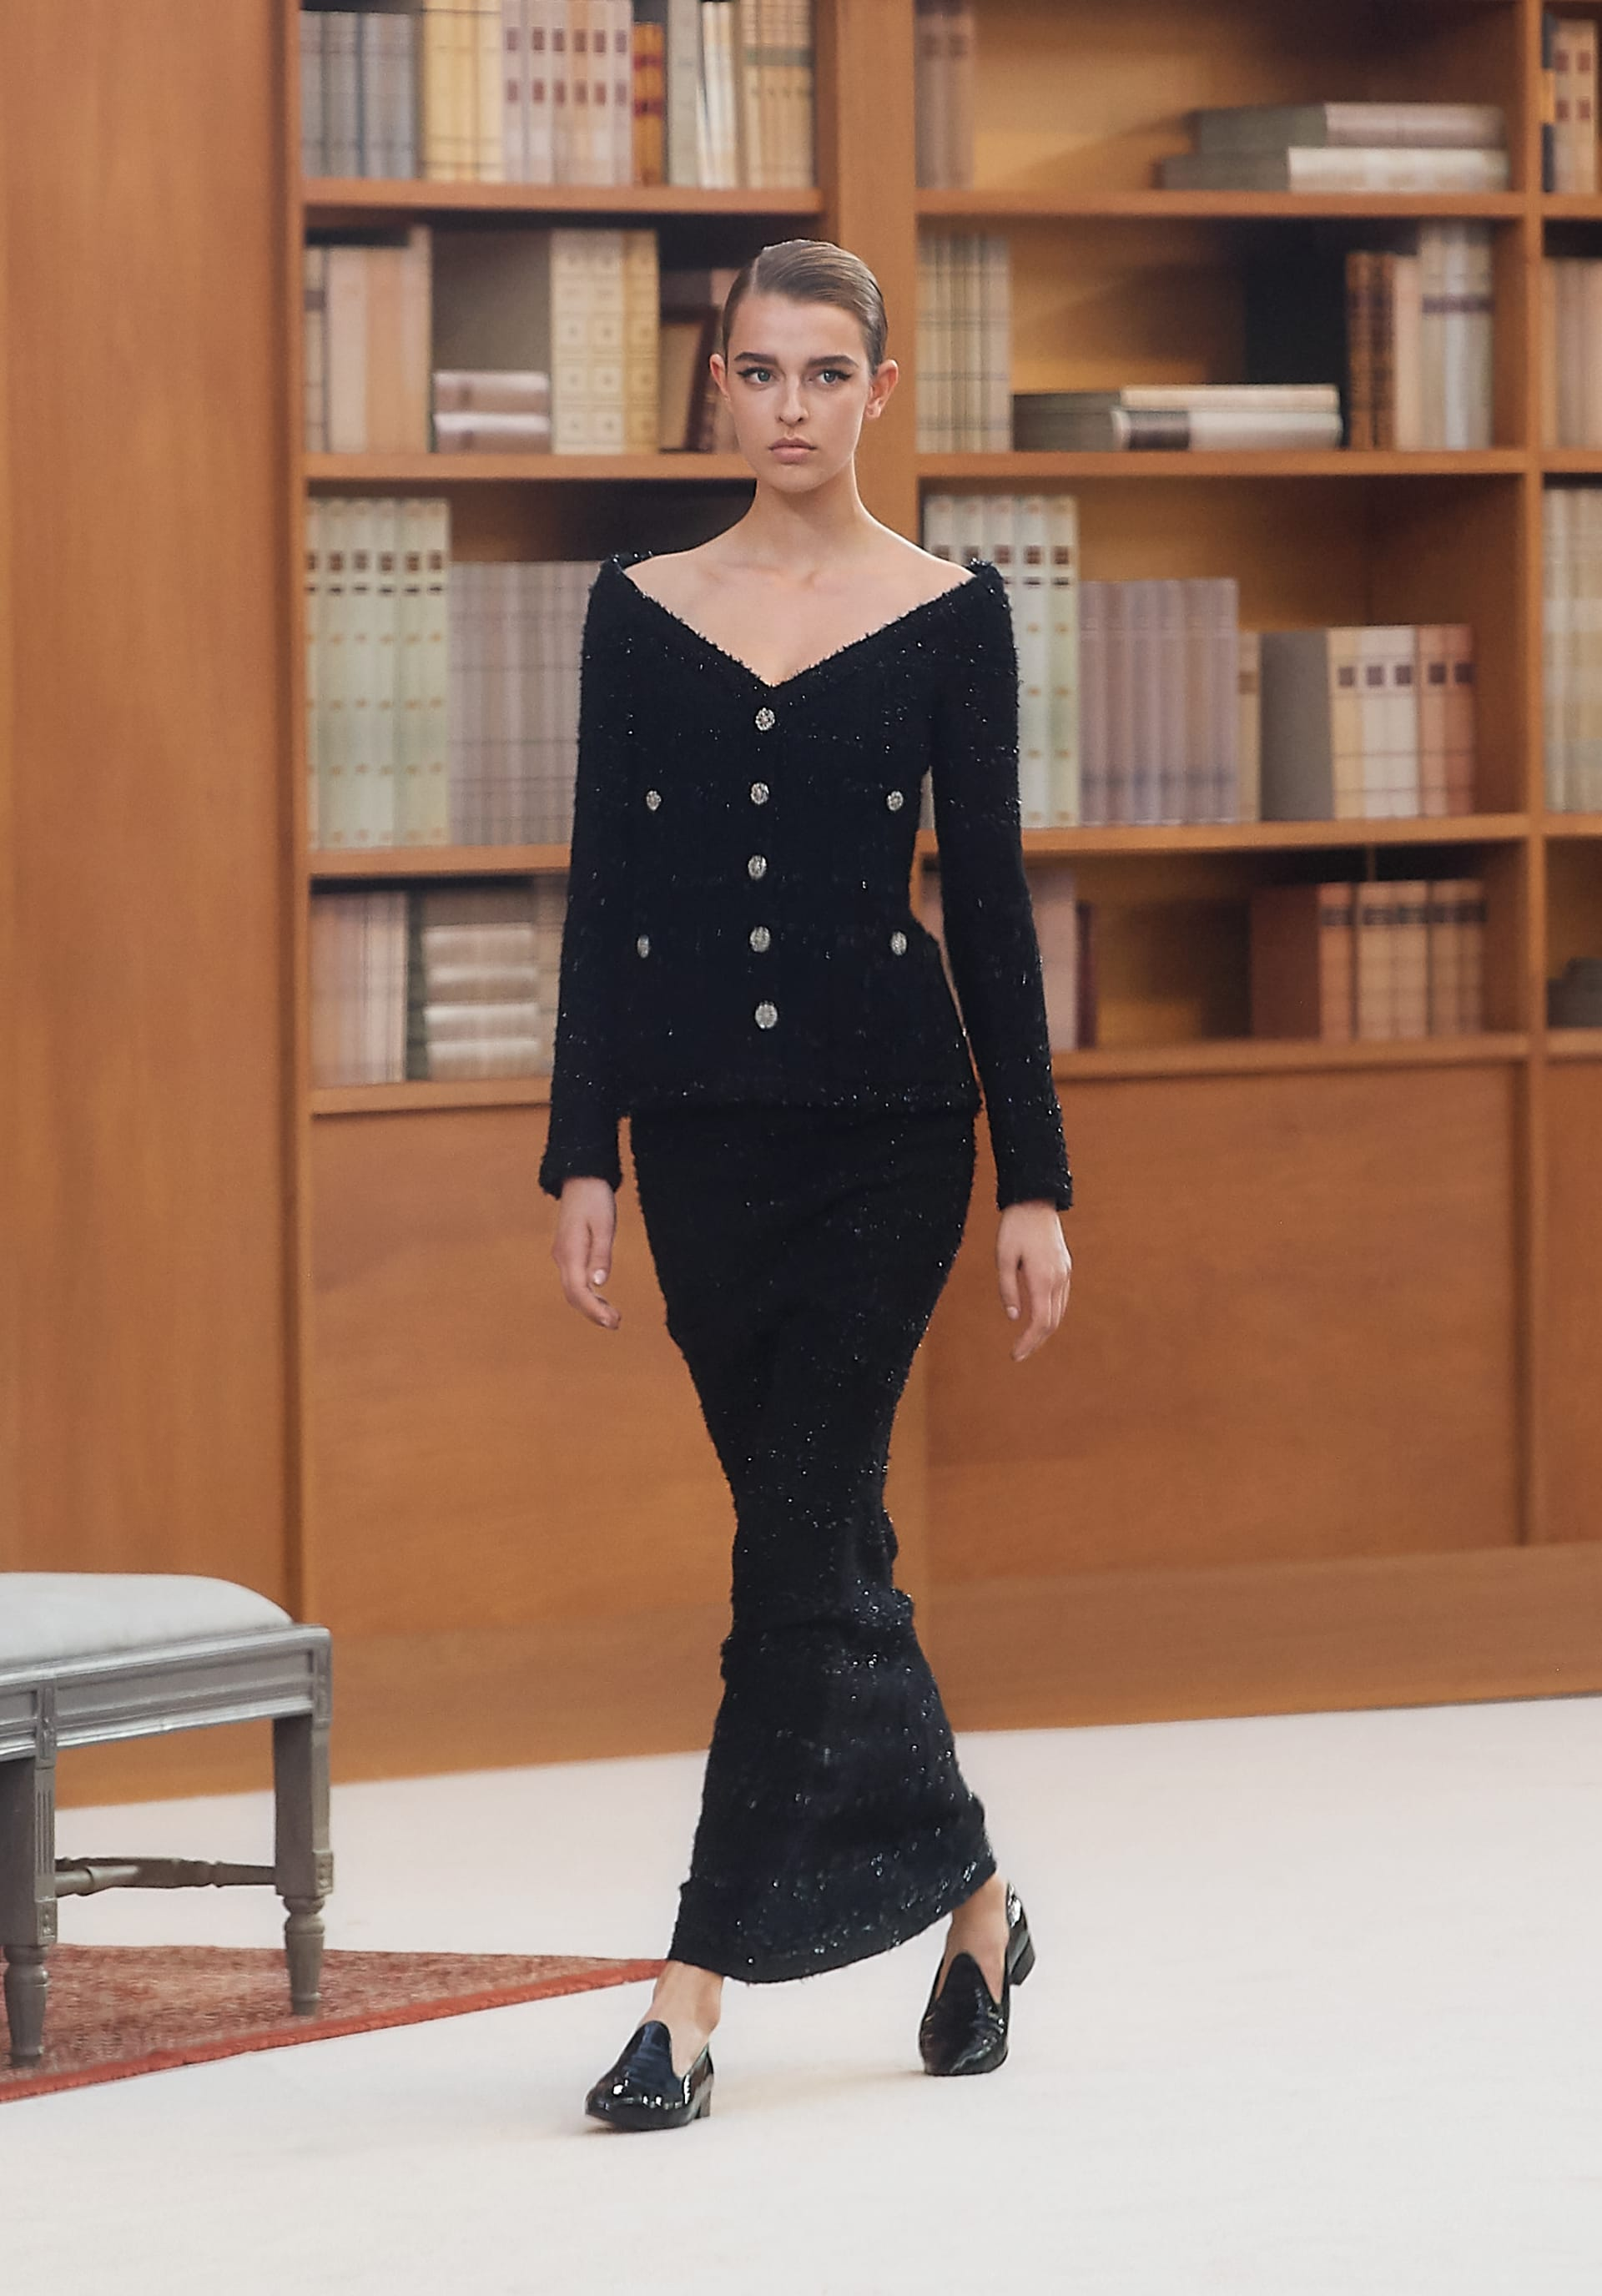 View 1 - Look 30 - Fall-Winter 2019/20 Haute-Couture - see full sized version